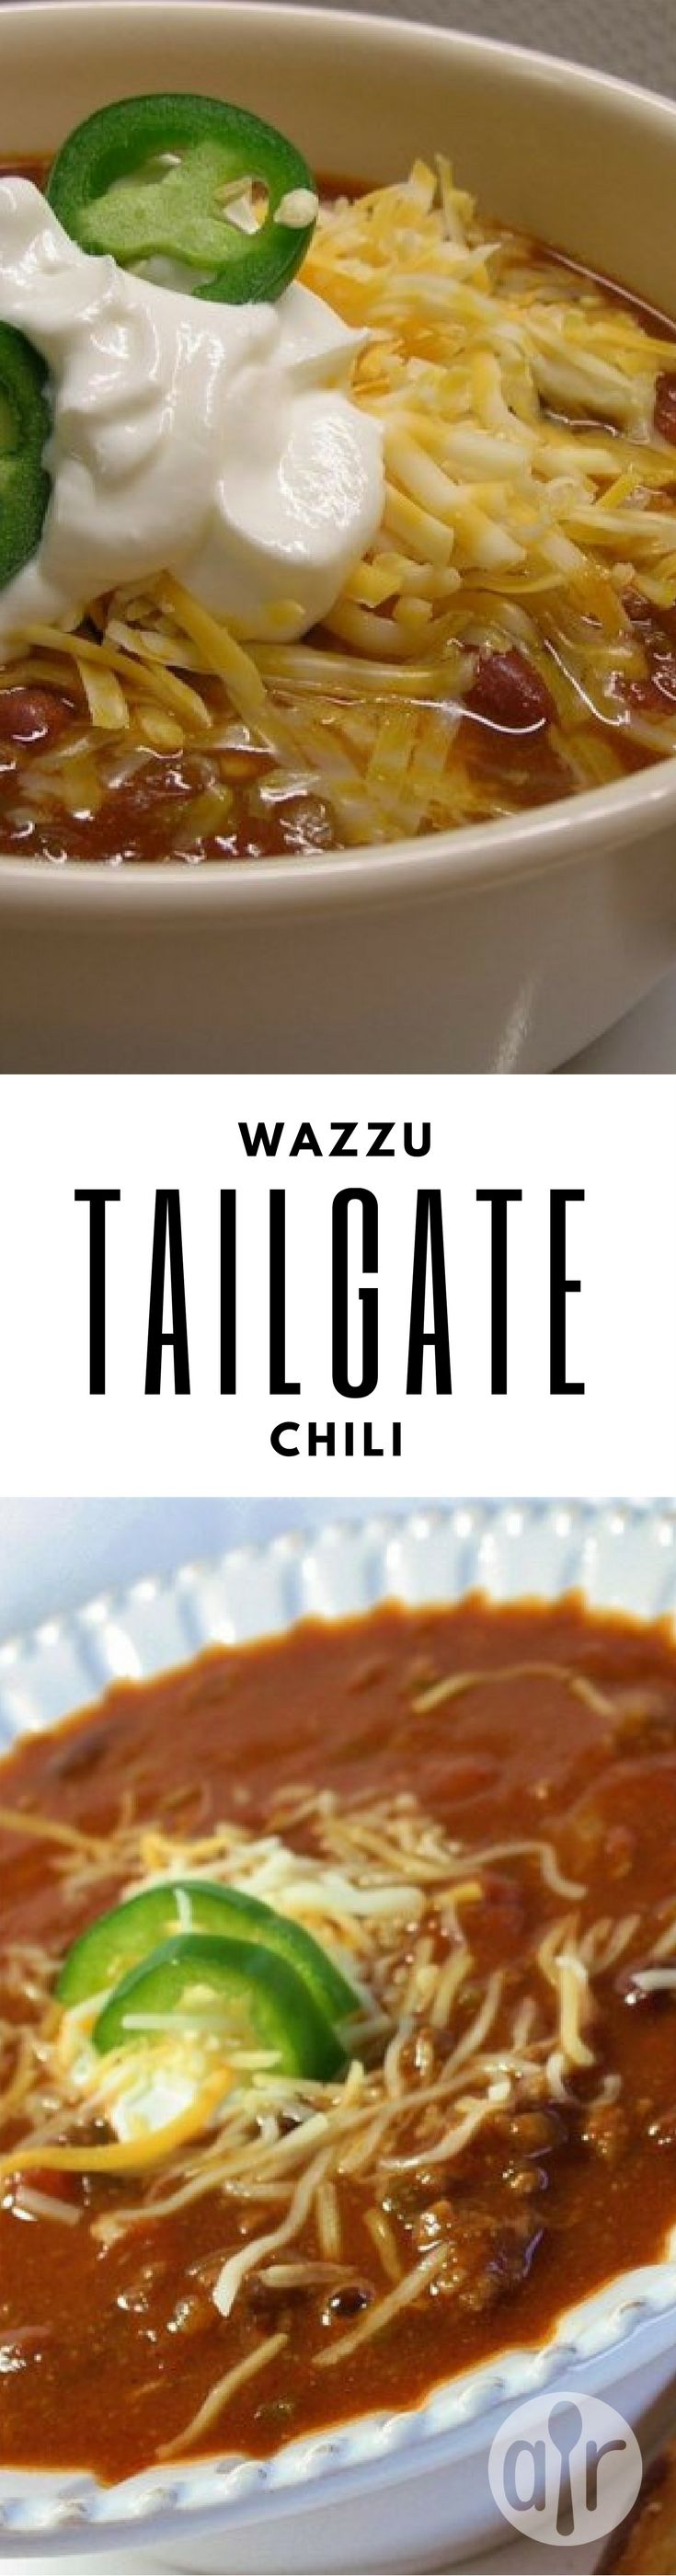 """Wazzu Tailgate Chili   """"This is a great and simple chili, full of flavor, and plenty of spice. It's best when refrigerated overnight and reheated before the game."""" #recipe #football"""